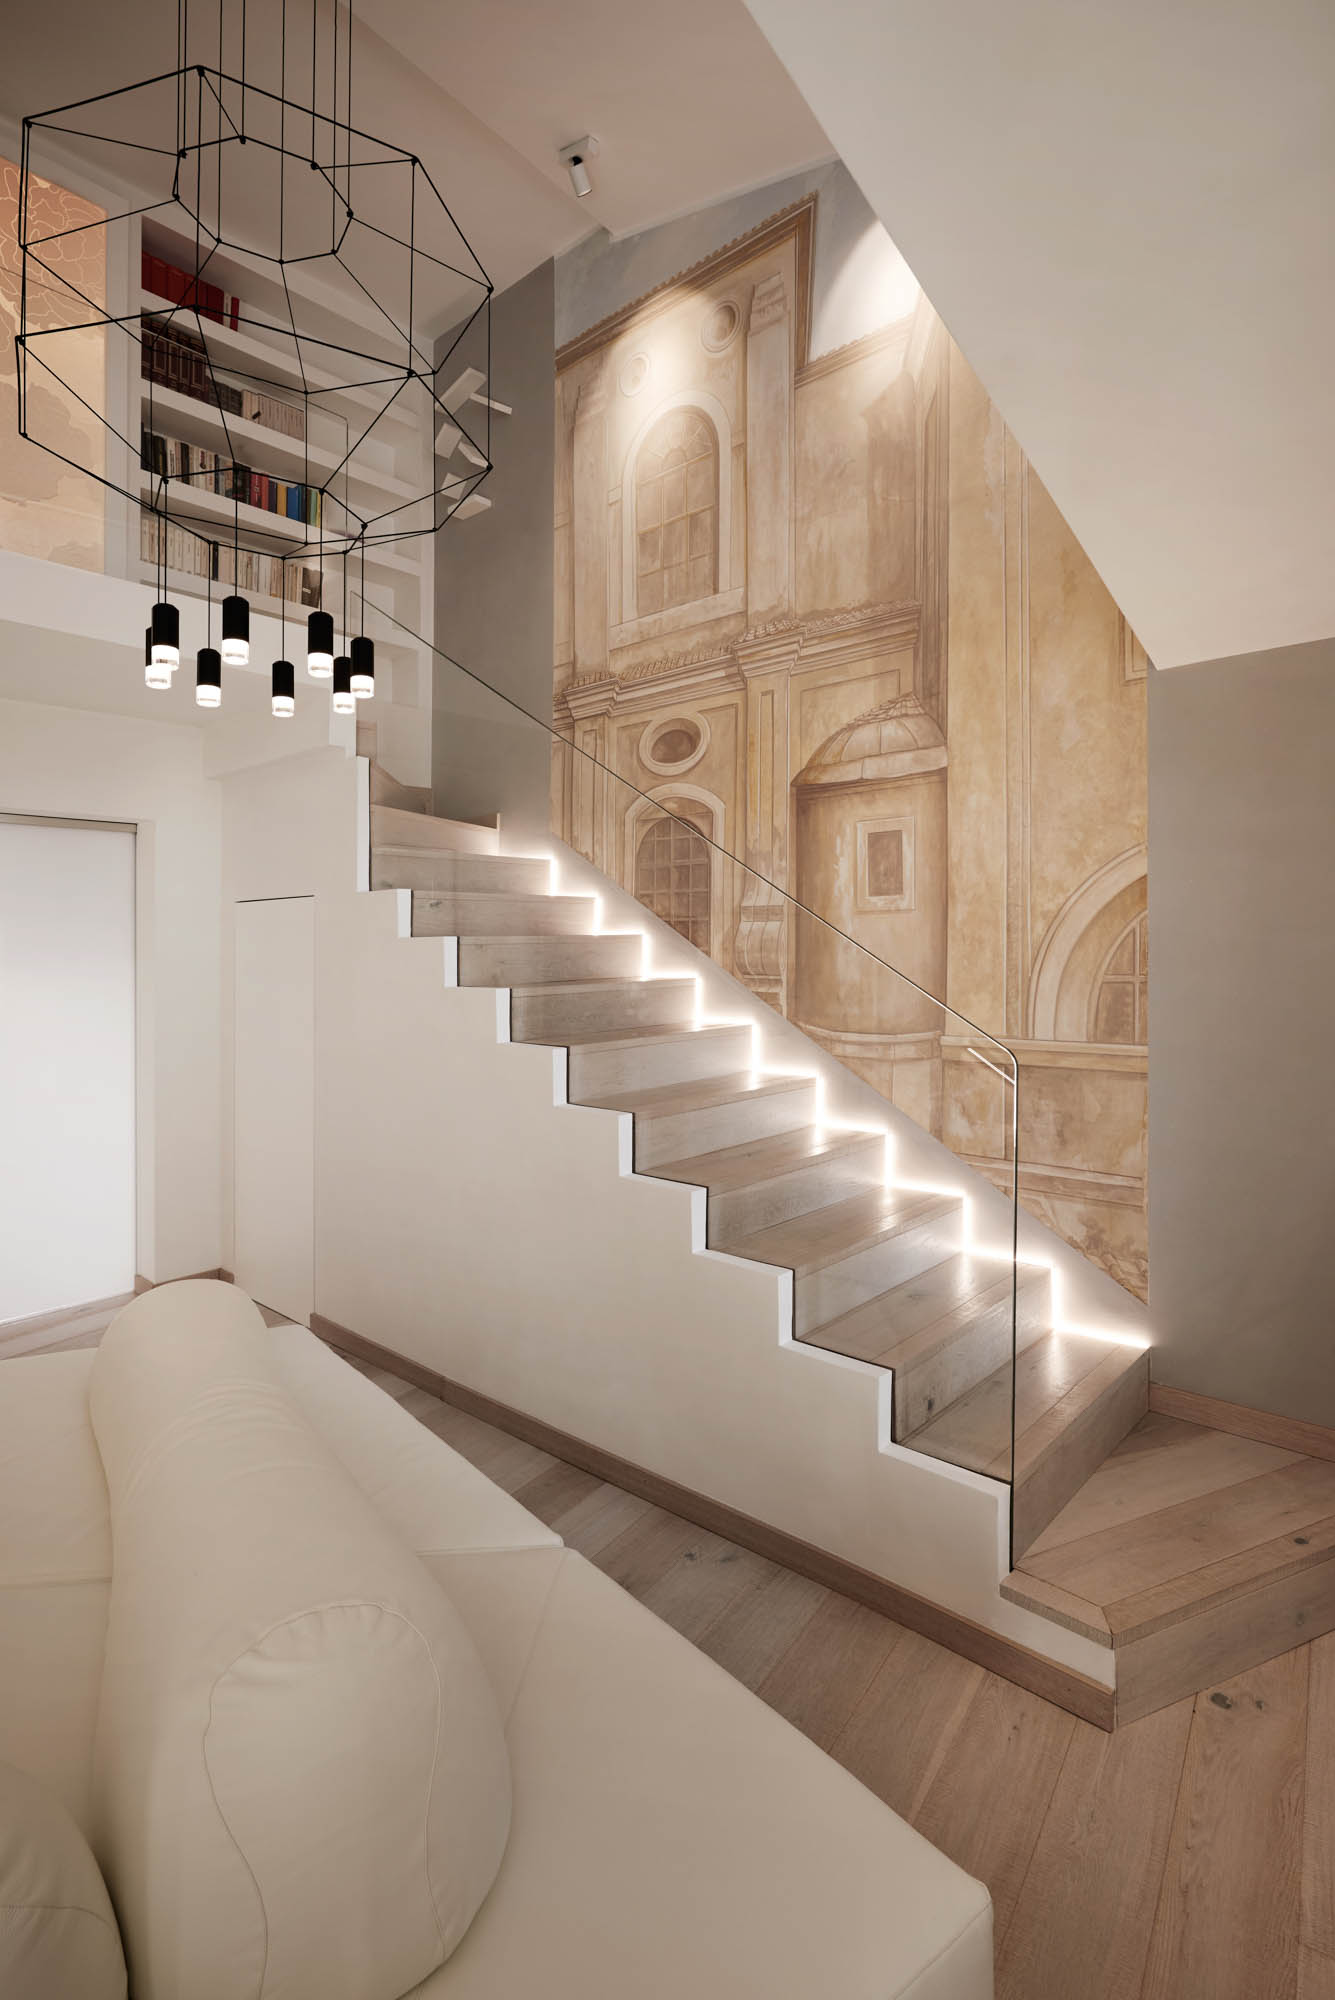 04_stair2